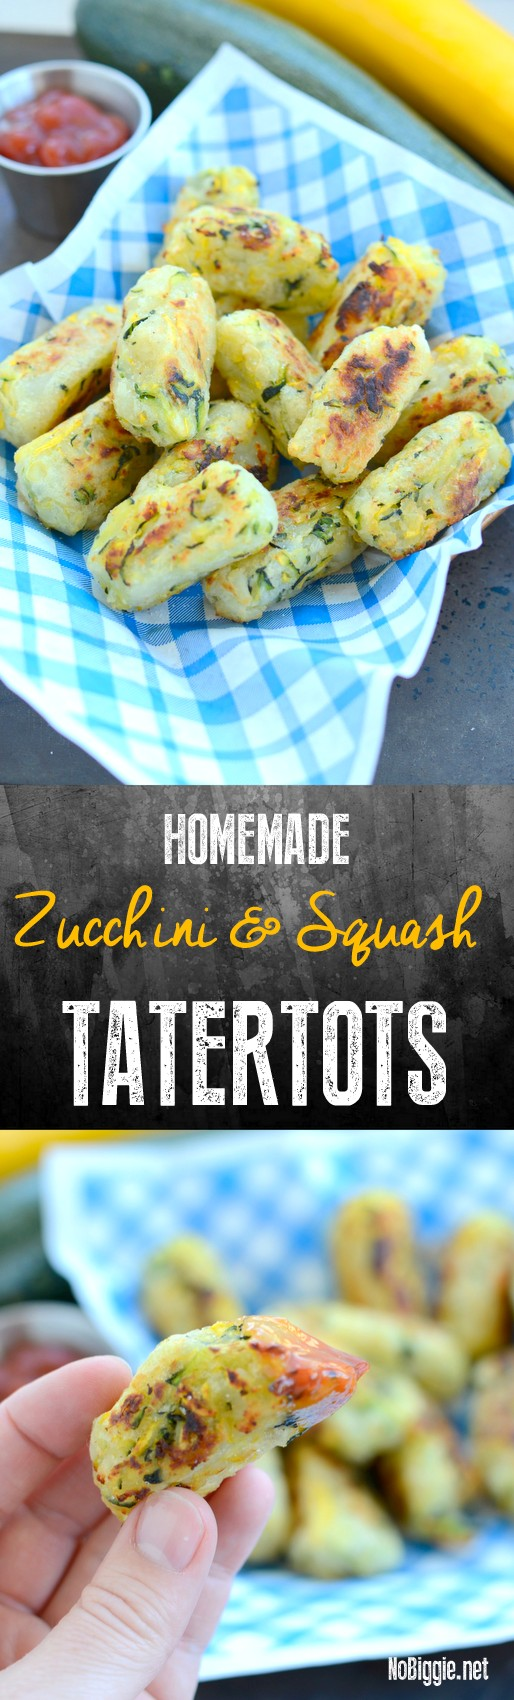 Zucchini and Squash tater Tots - tater tots that are homemade and delicious not to mention that they are baked and not fried! #healthytatertots #healthyrecipes #zucchini #squash #tatertots #tatertotrecipe